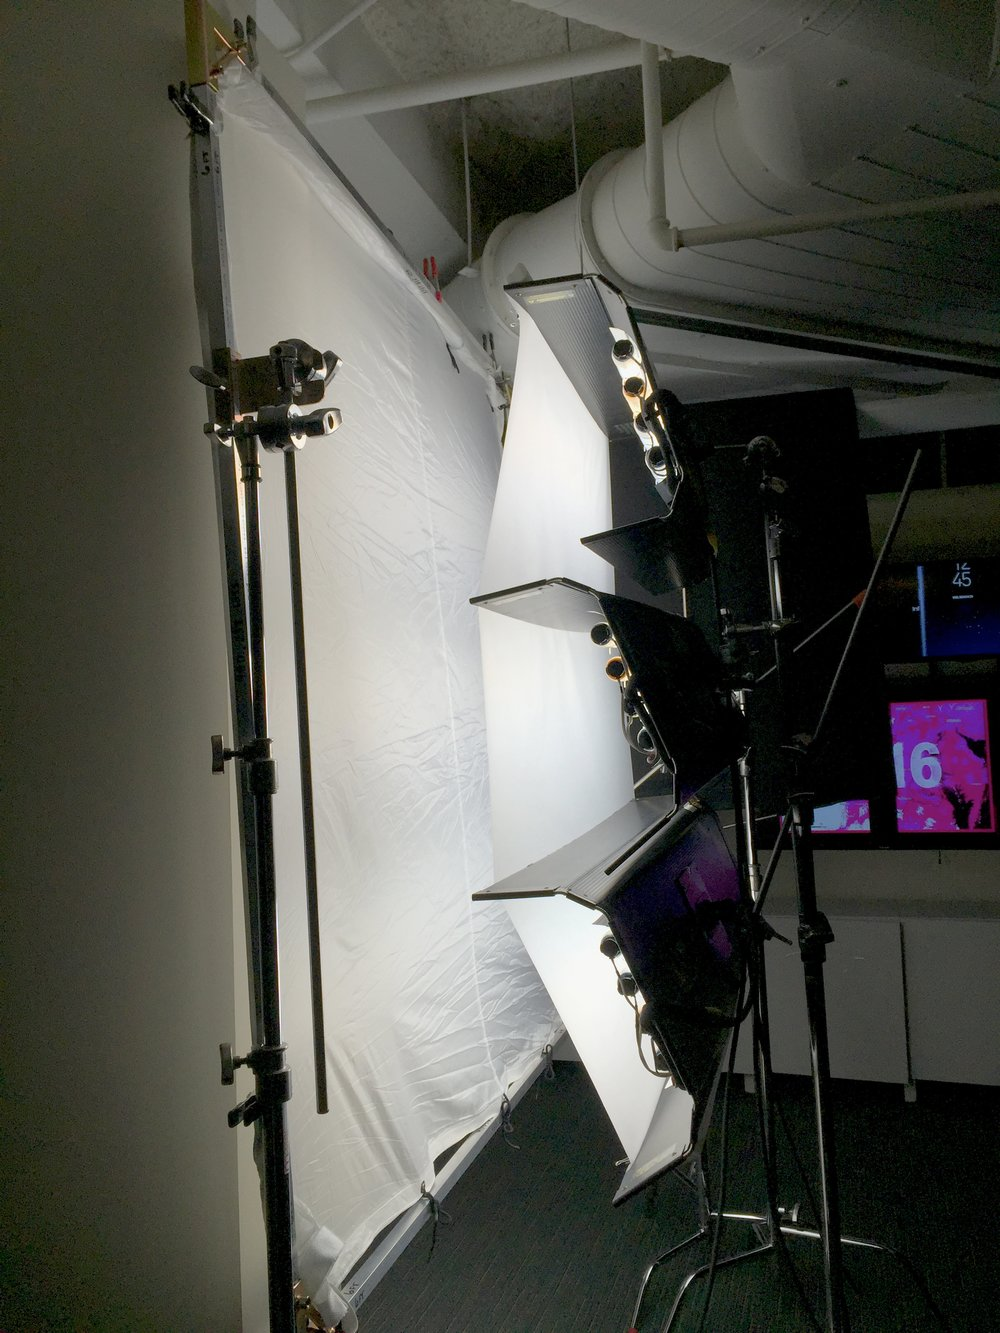 Key Light - Three 4ft 4banks with 1/2 Diffusion and then through 1/2 Grid Cloth on a 6x6ft frame